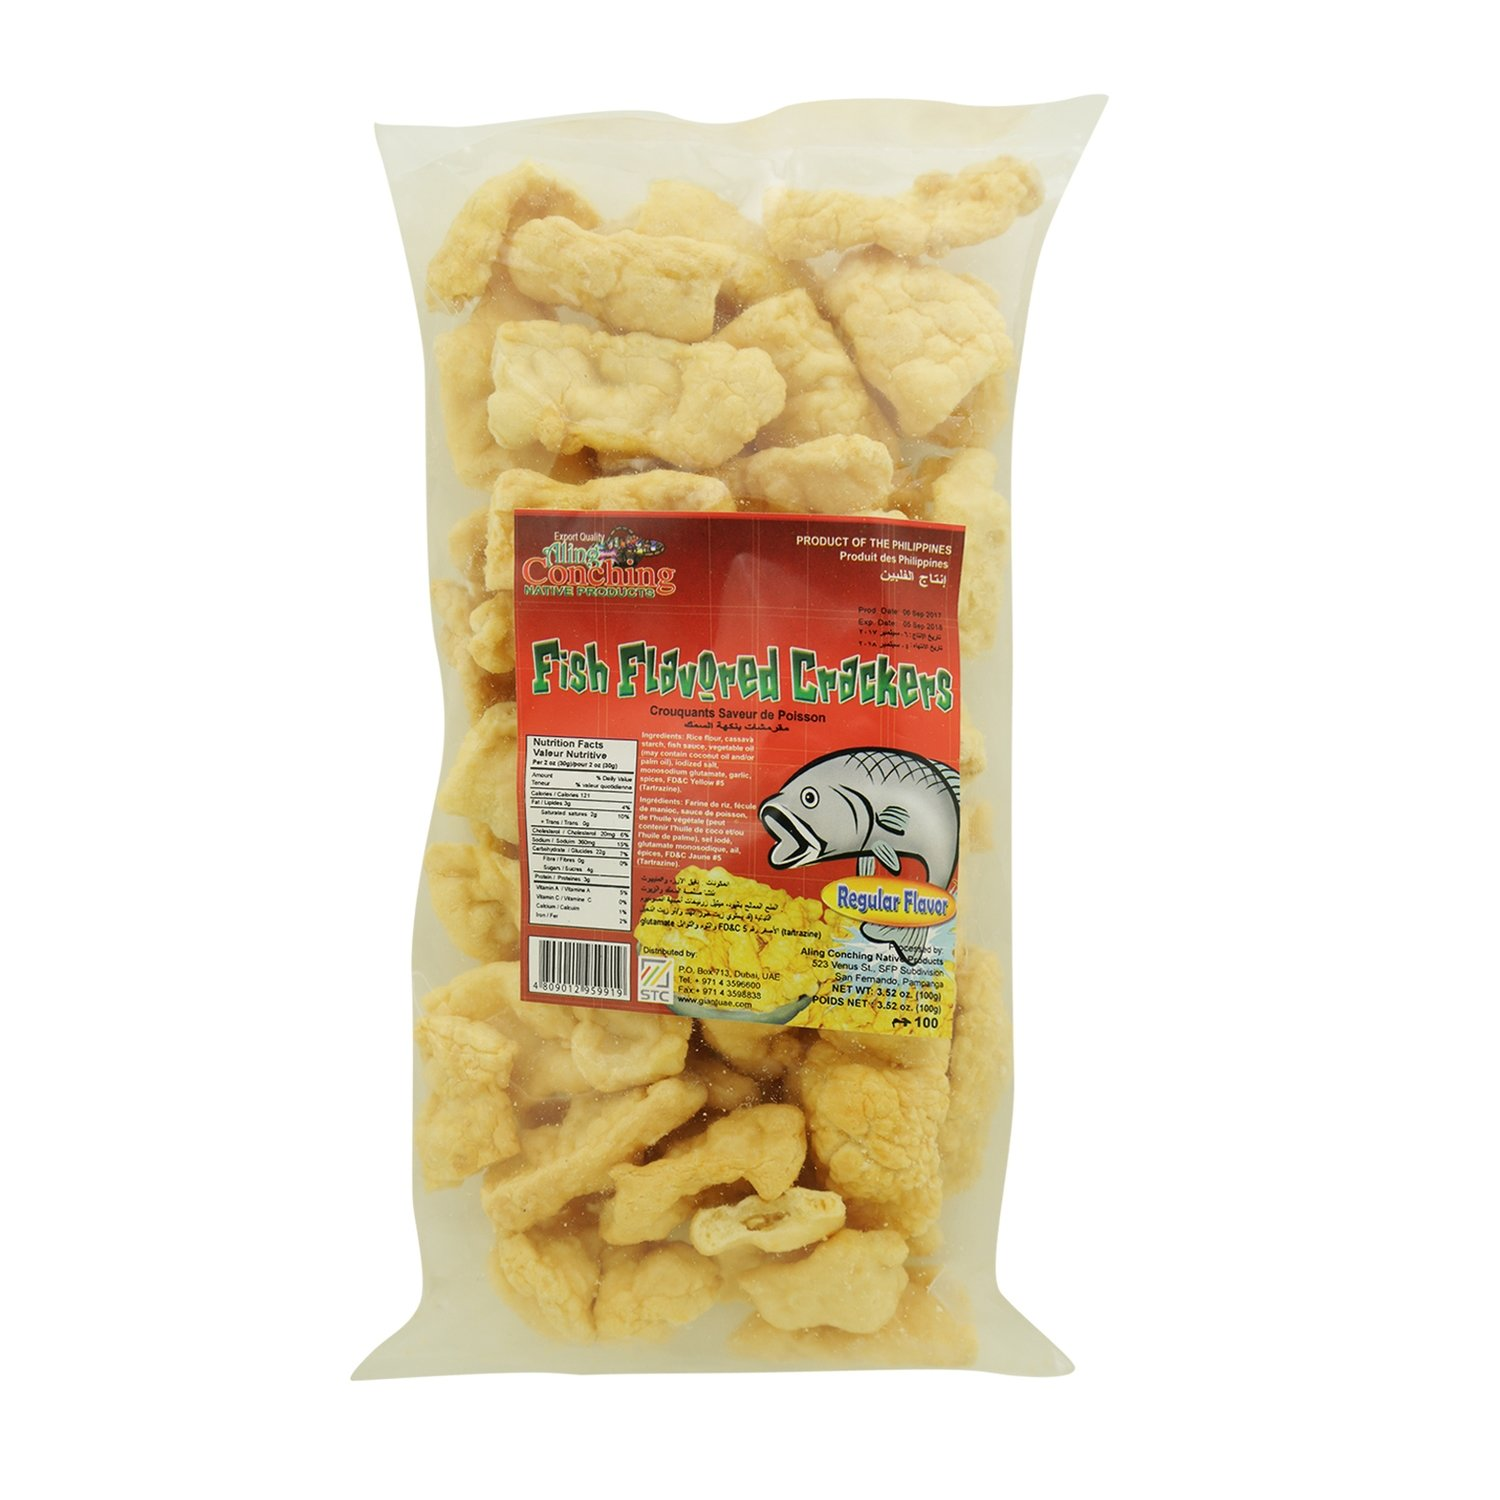 Aling Conching Fish Flavored Crackers Regular Flavor 100g